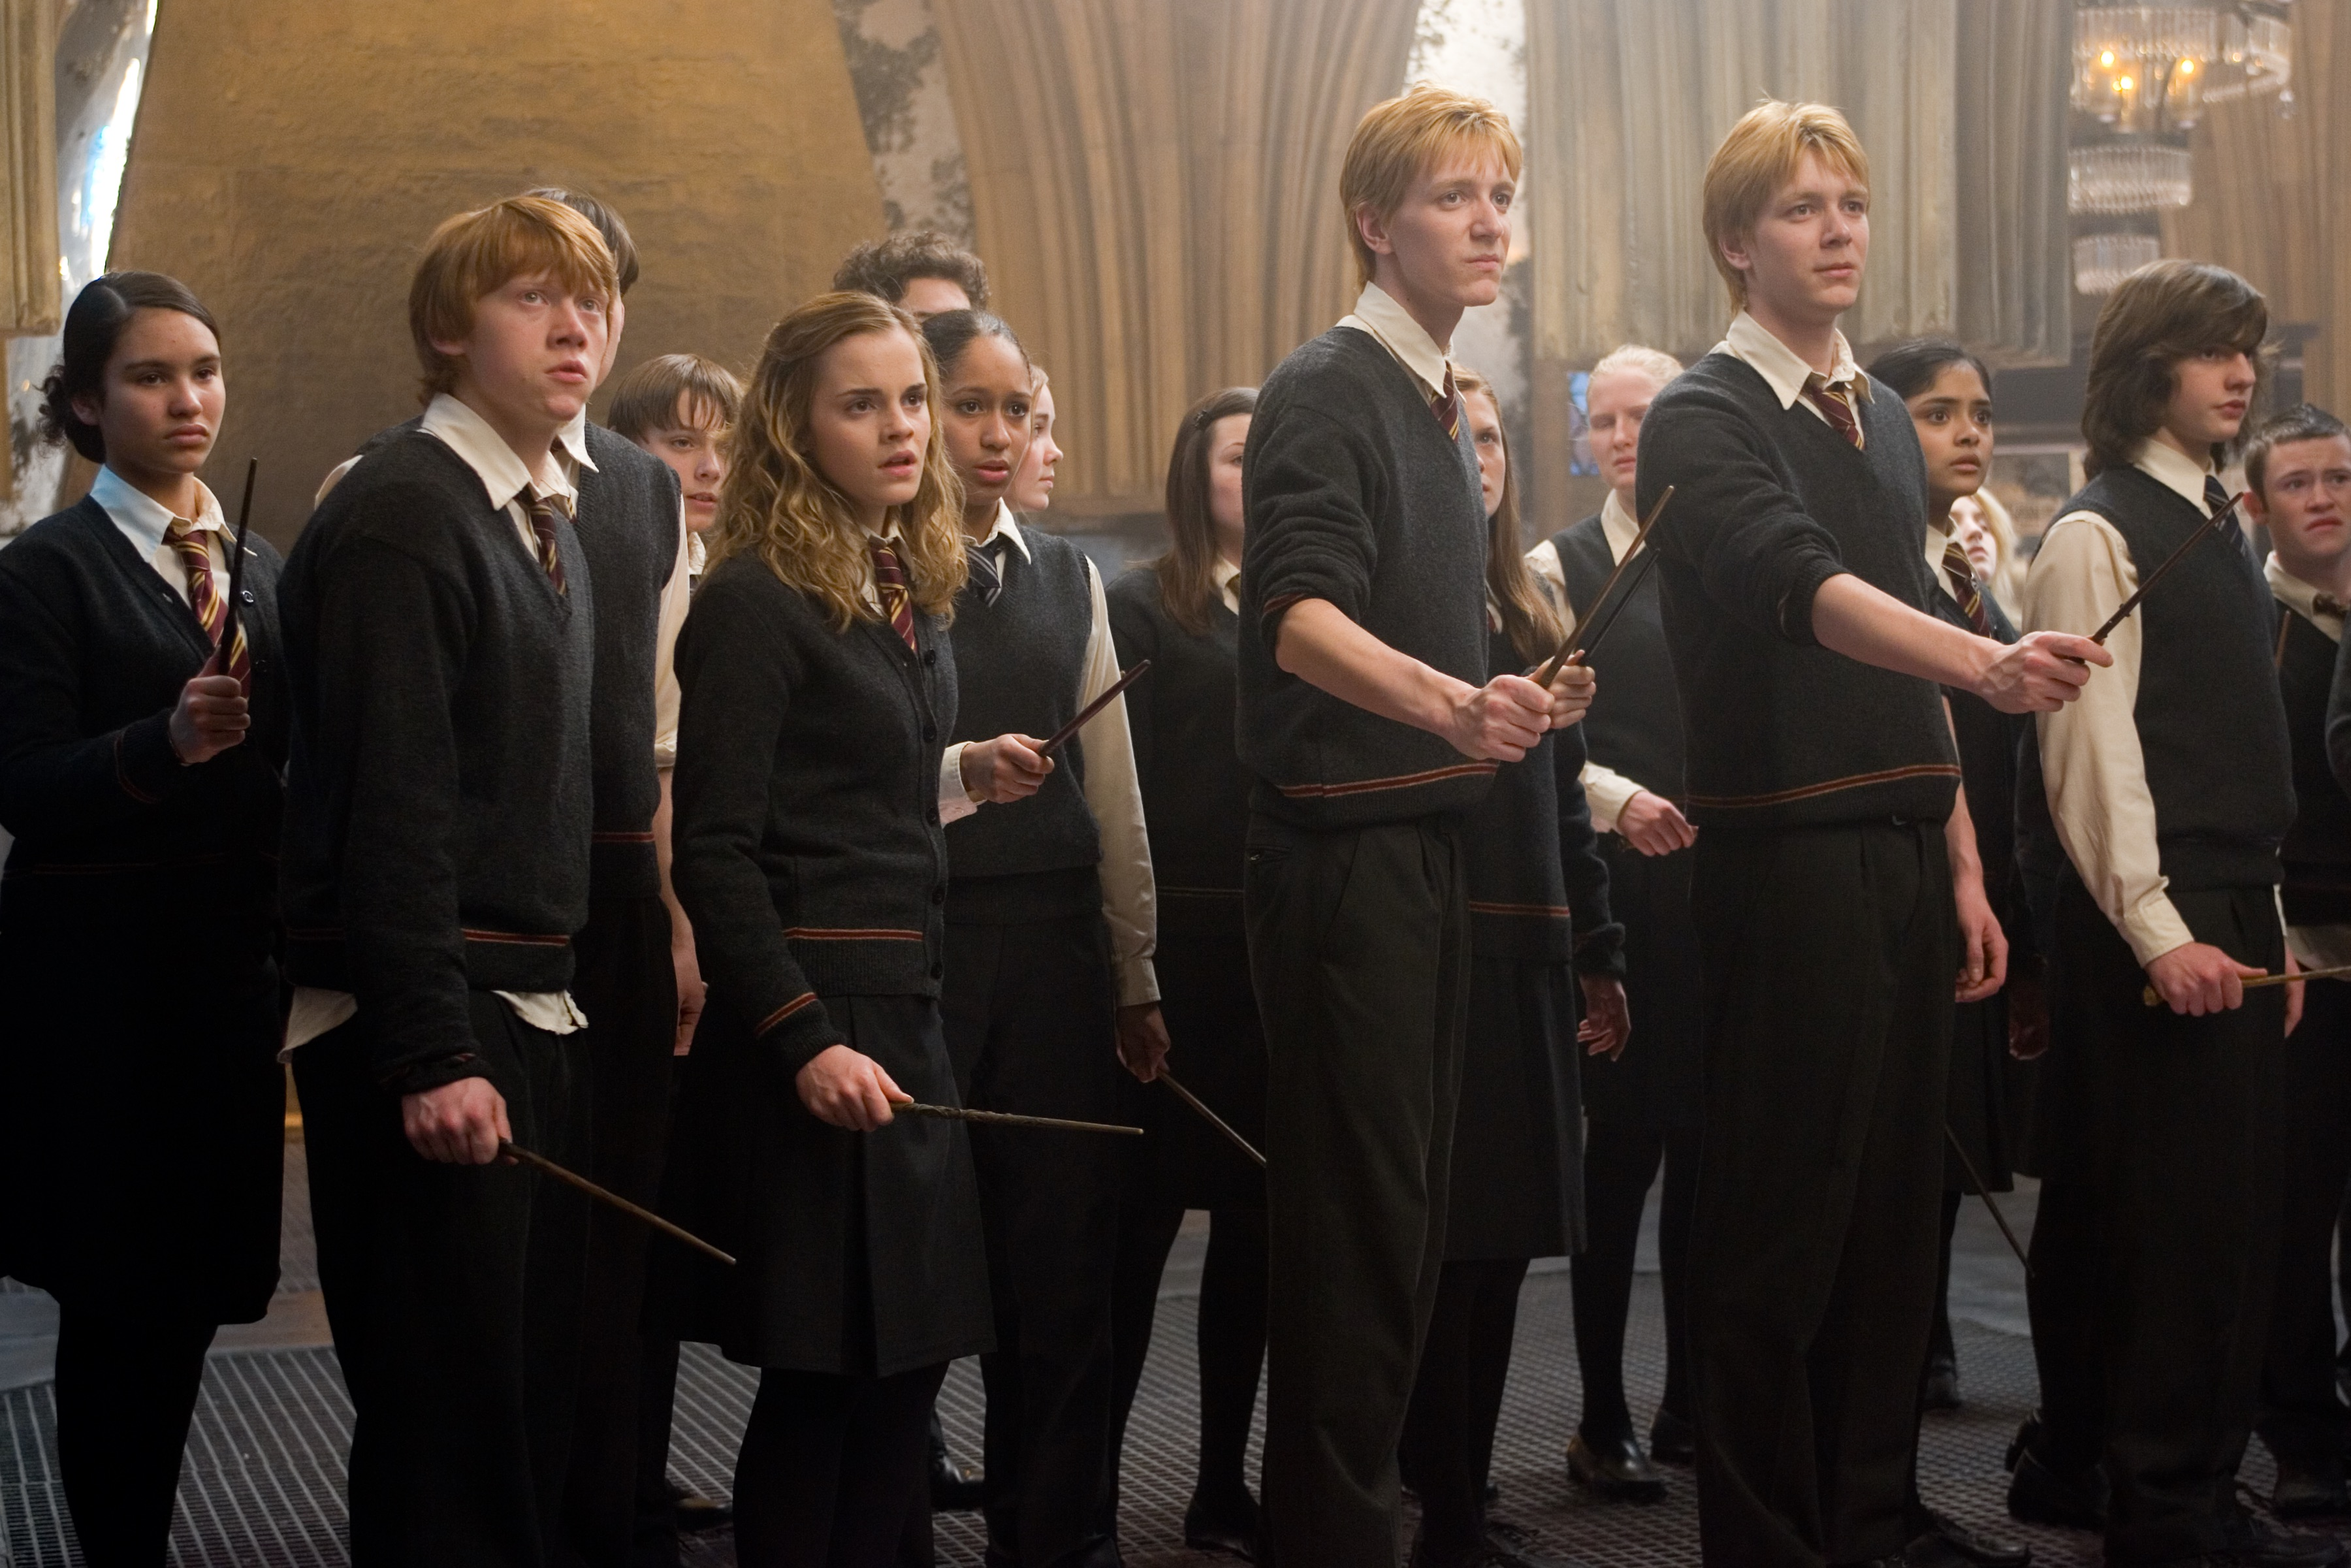 image-HP-F5-room-of-requirement-ron-hermione-twins